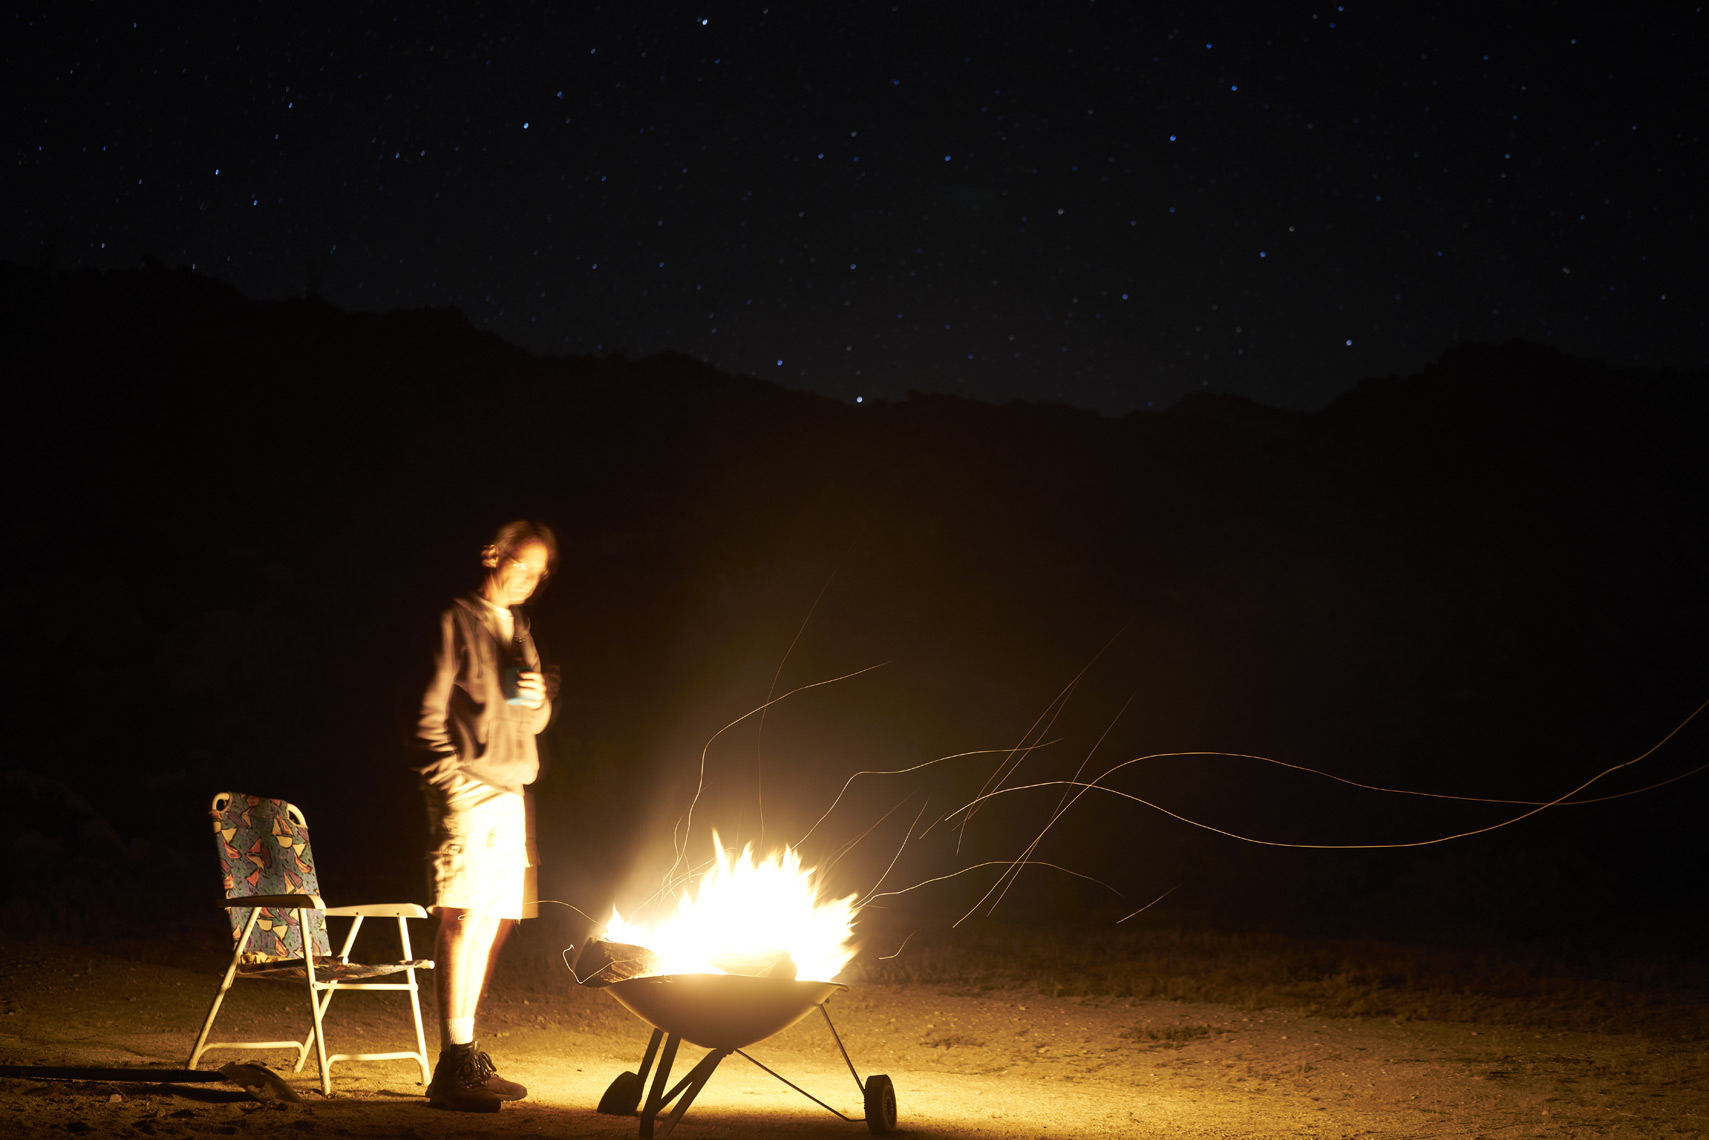 Man with fire at night in Anza-Borrego State Park California Sean Dagen Photography